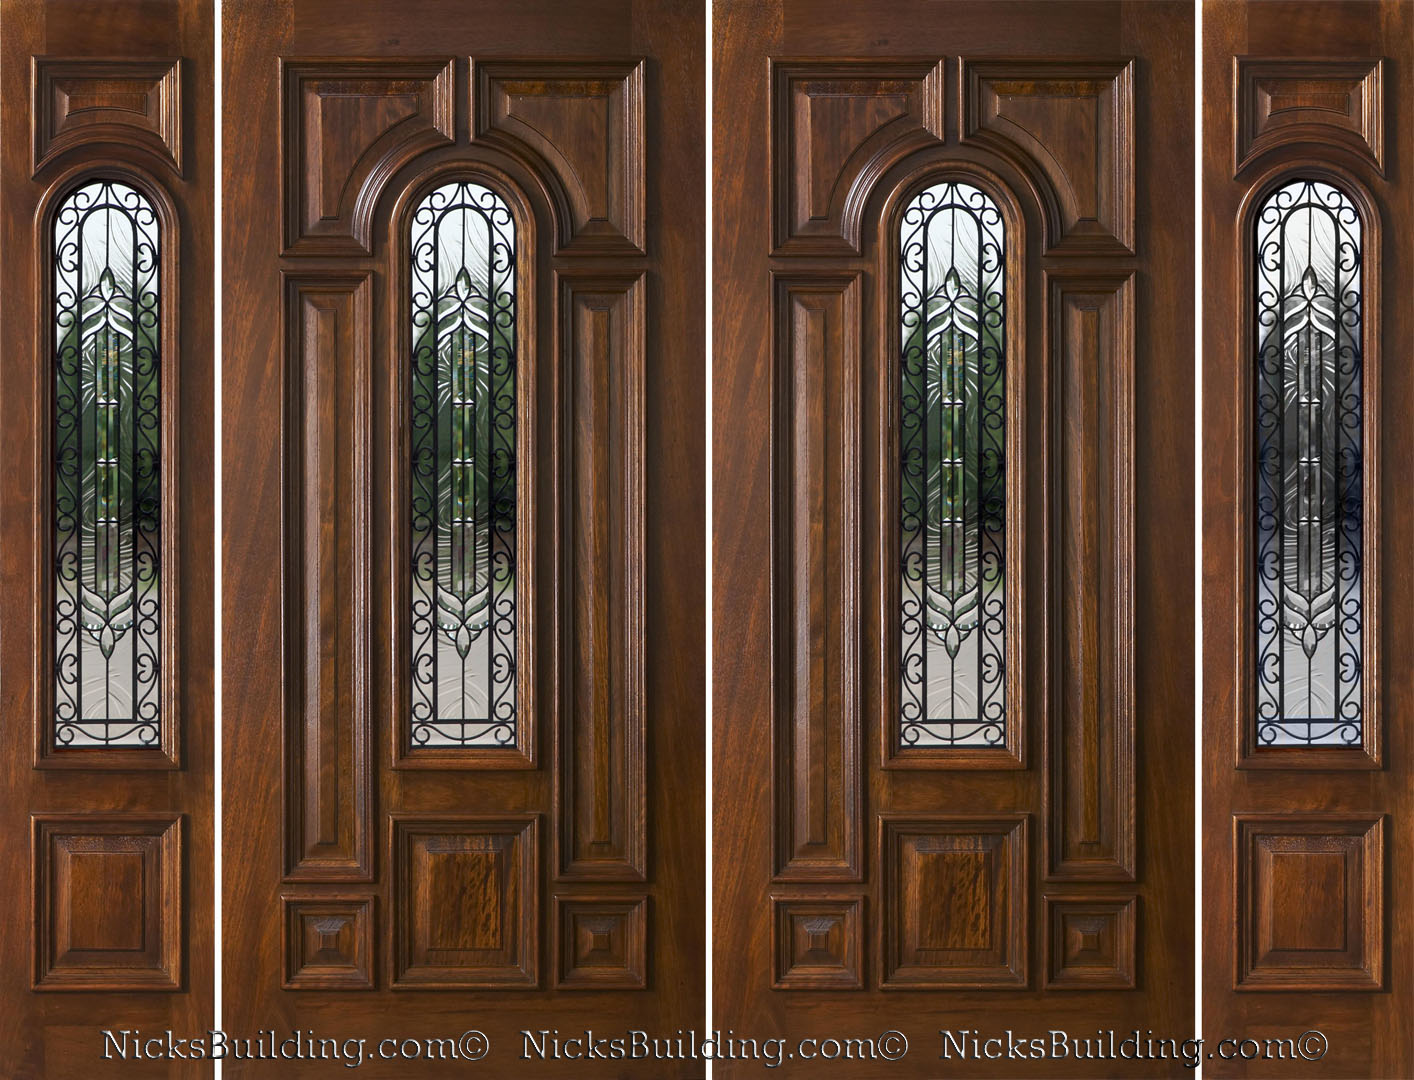 1080 #664028 Exterior Double Doors With Sidelights Solid Mahogany Doors picture/photo Entry Doors With Sidelights 41991414